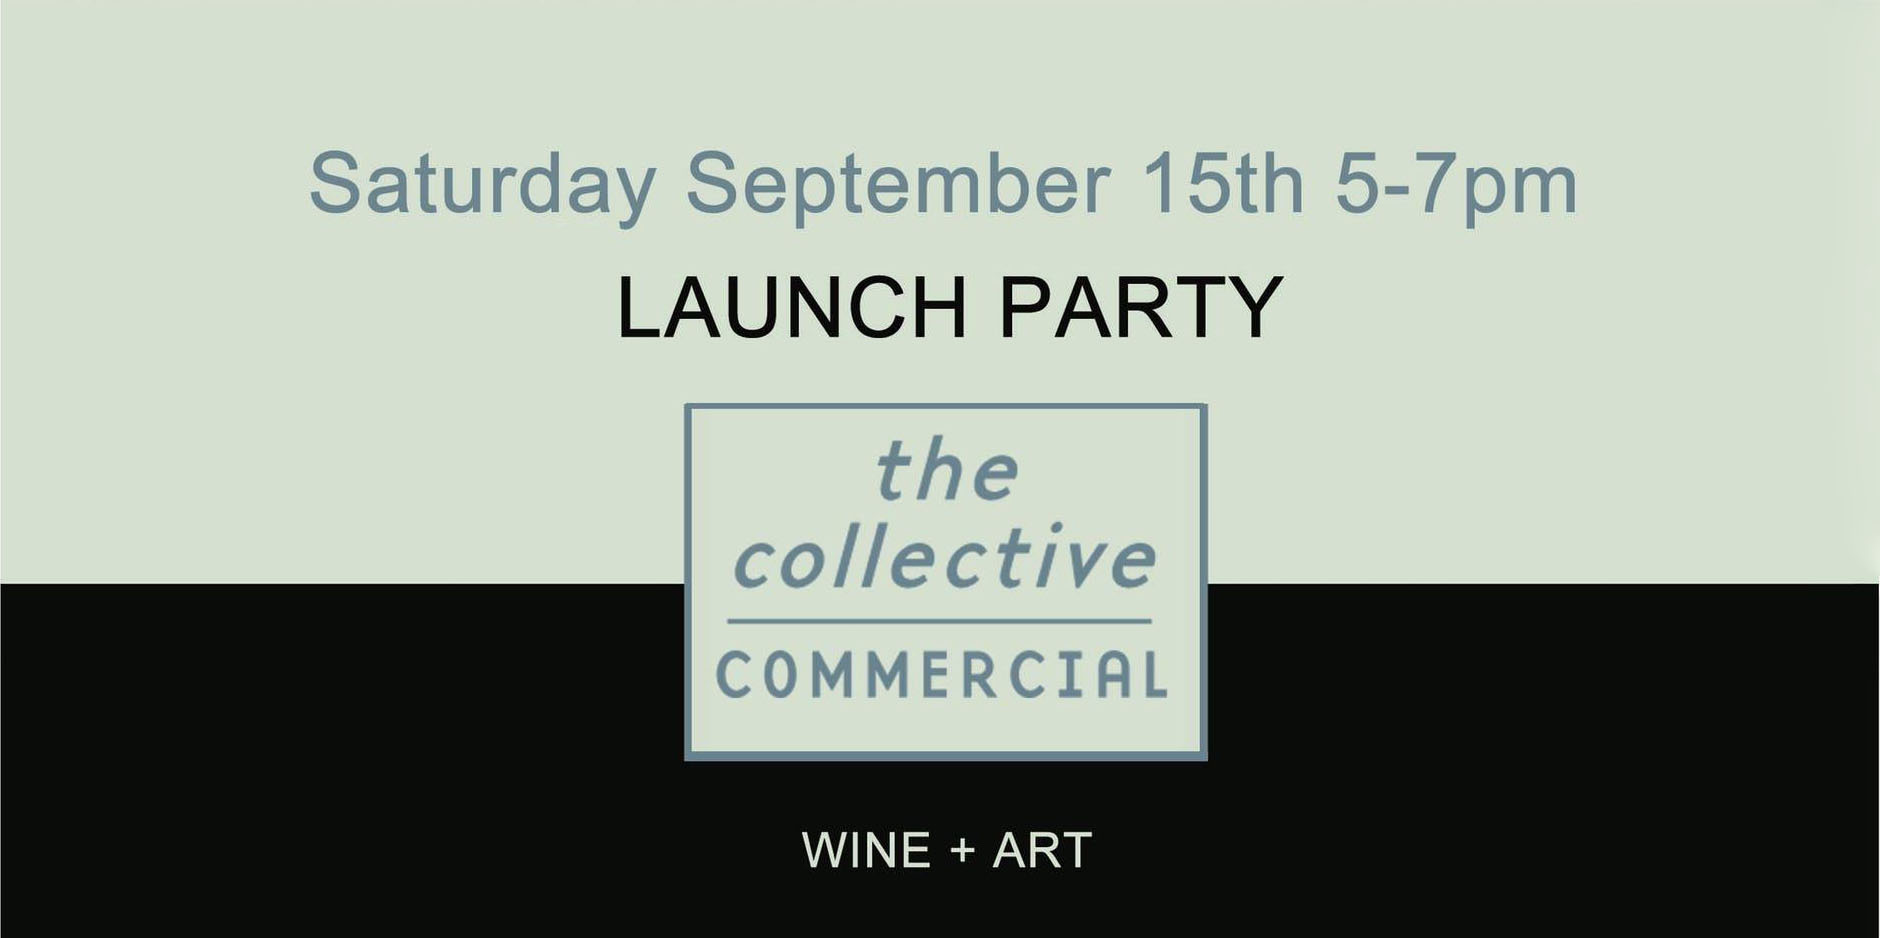 The Collective | Commercial Launch Party